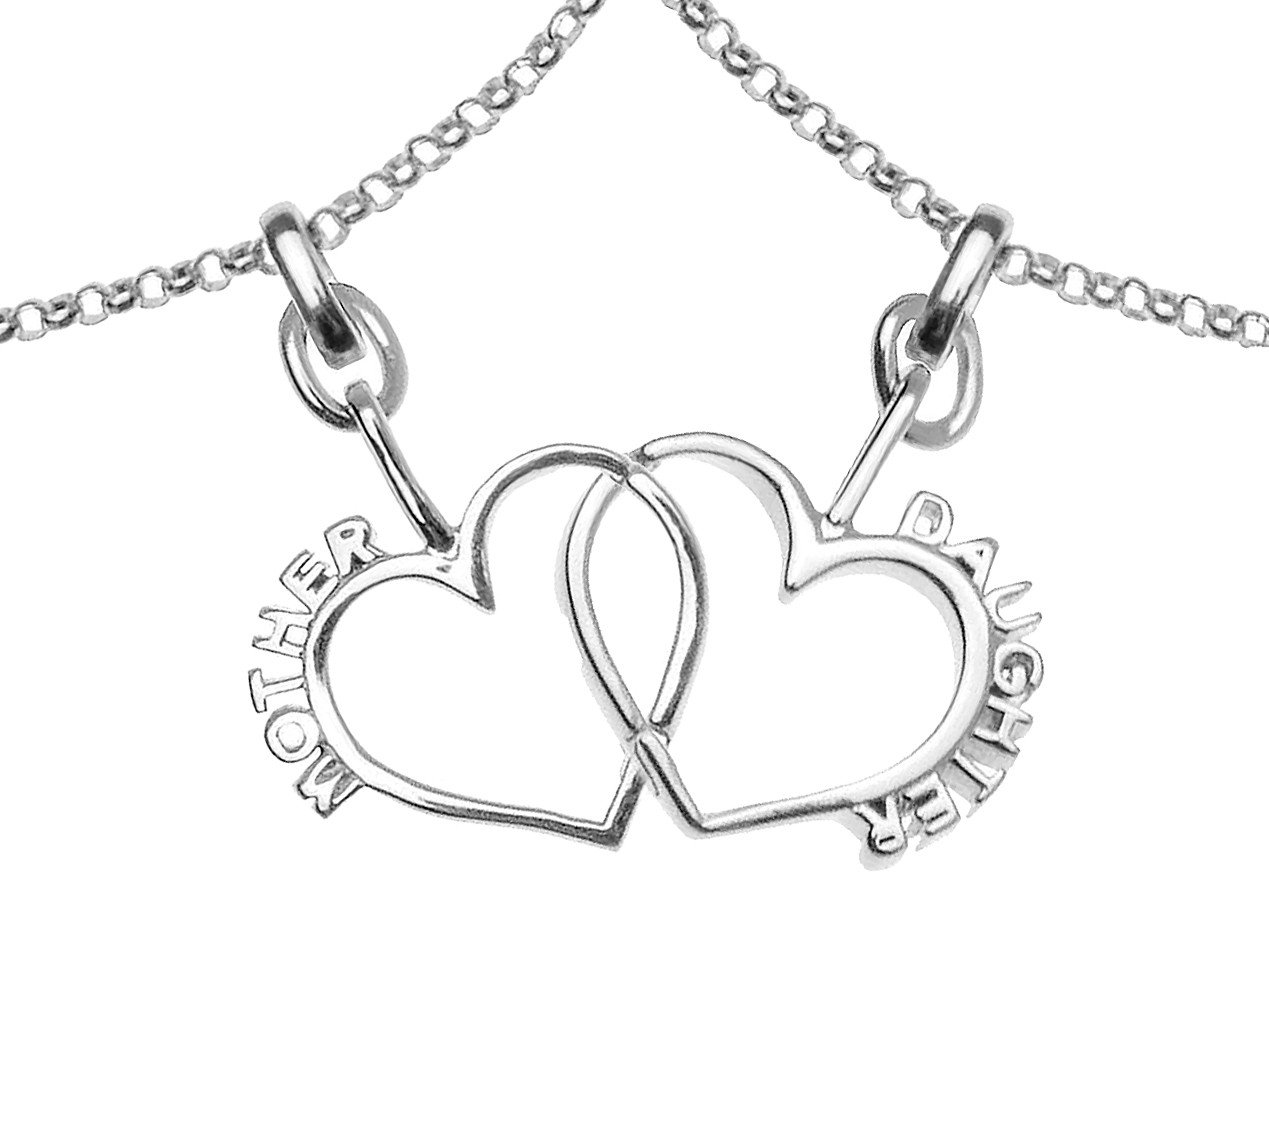 1269x1125 Mother Daughter Connecting Hearts Bracelet